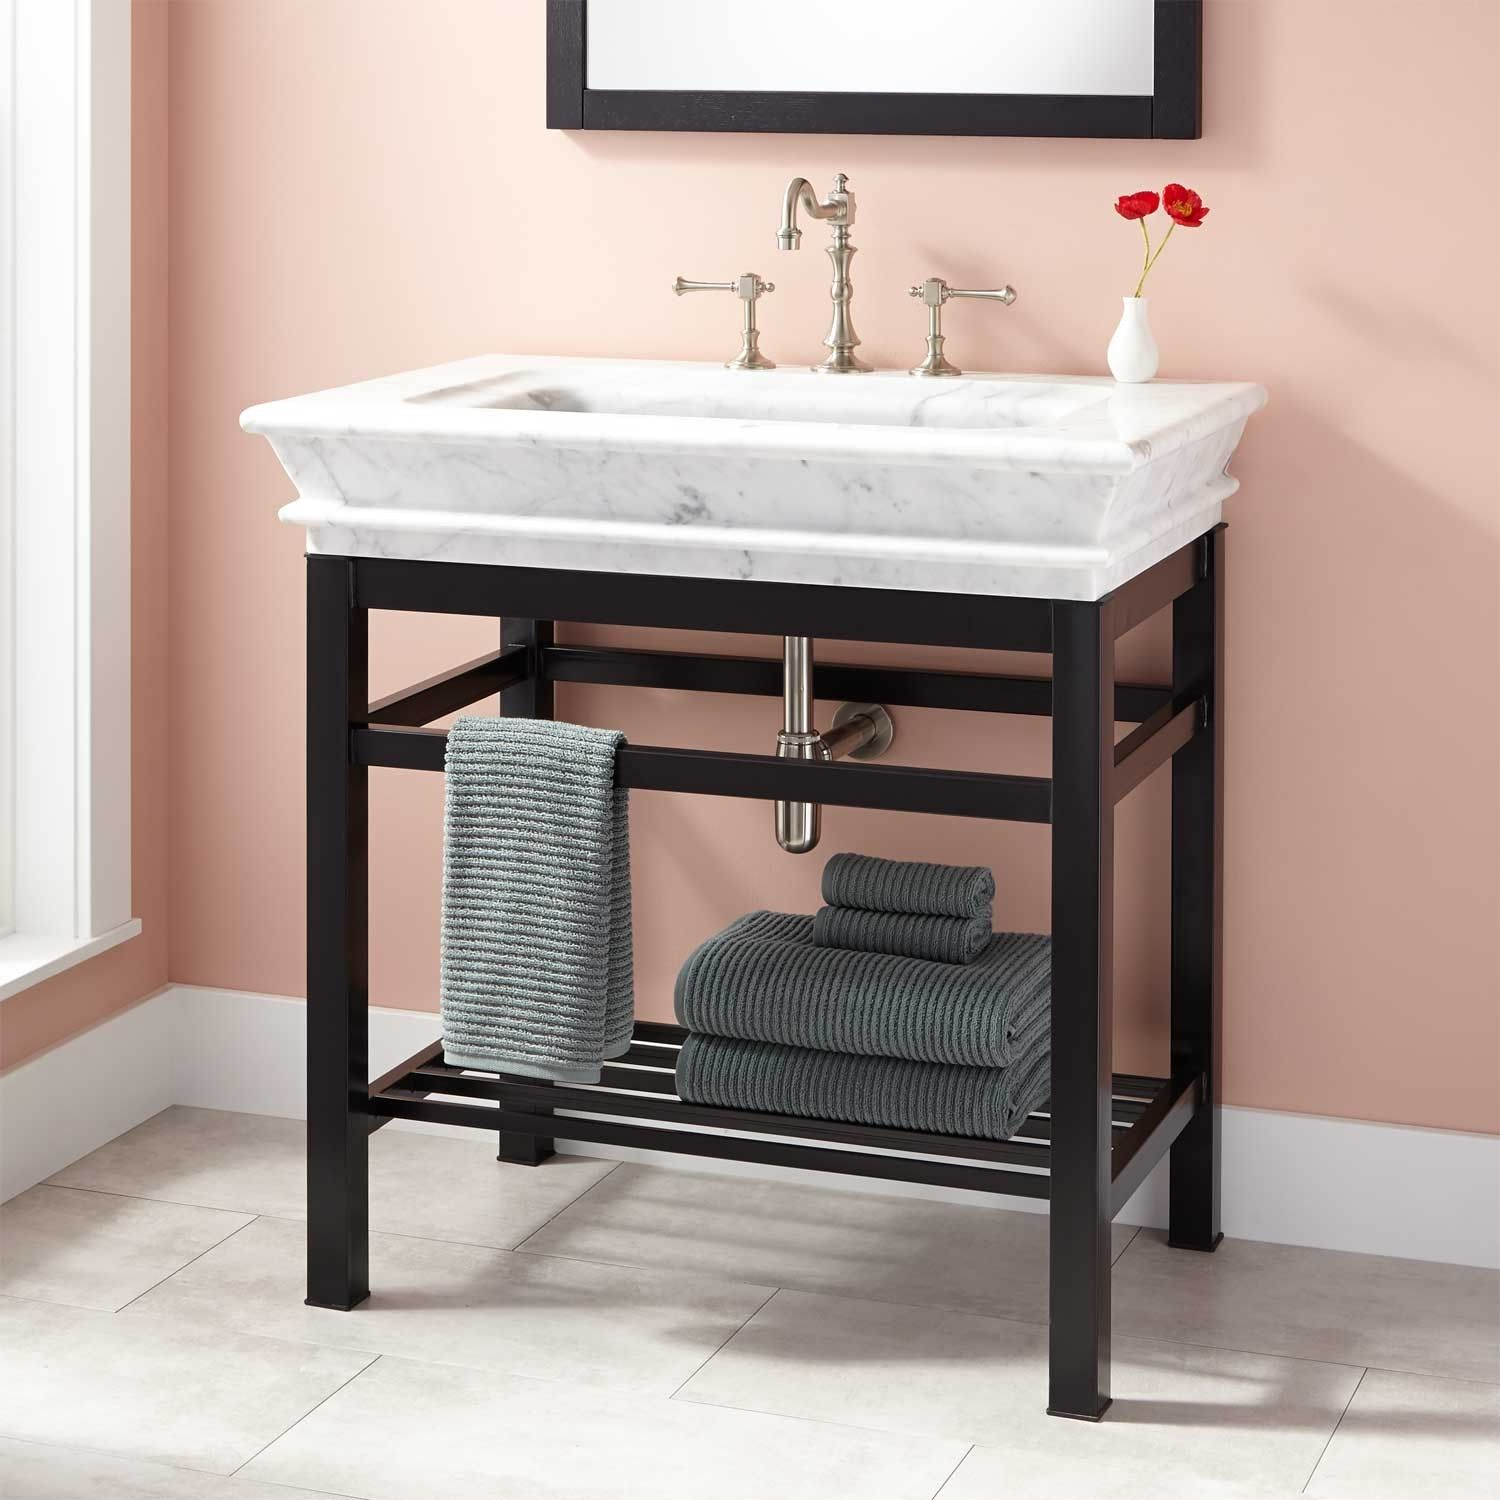 Modern Console Vanity With Carrara Marble Sink Top Bathroom